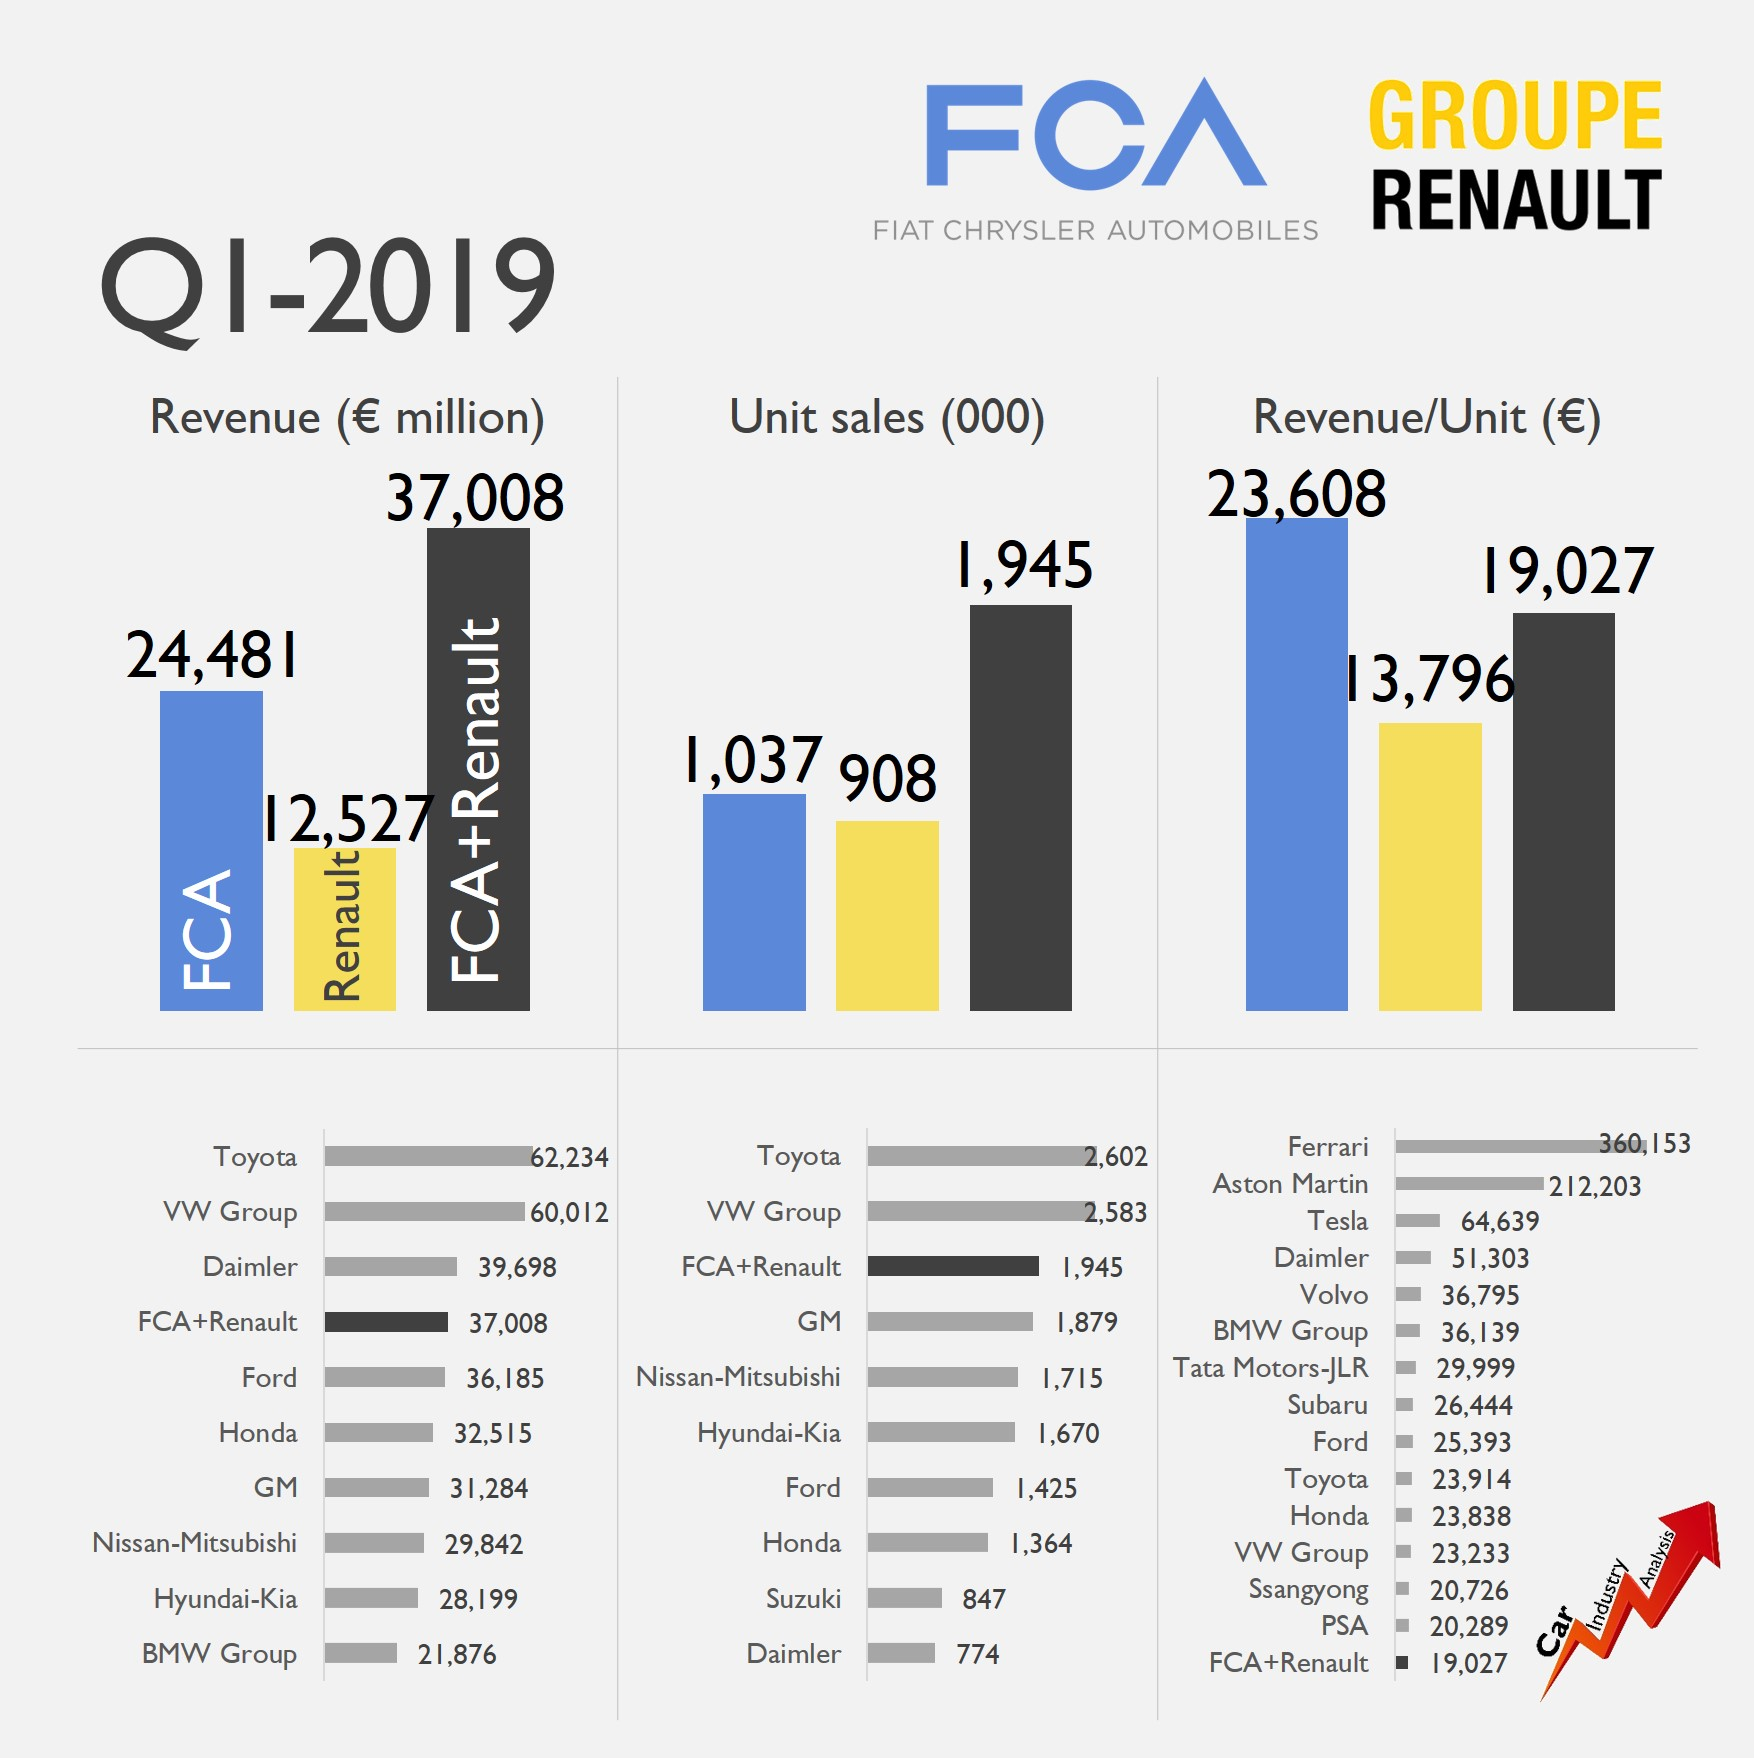 The FCA and Renault merger would create the world's largest